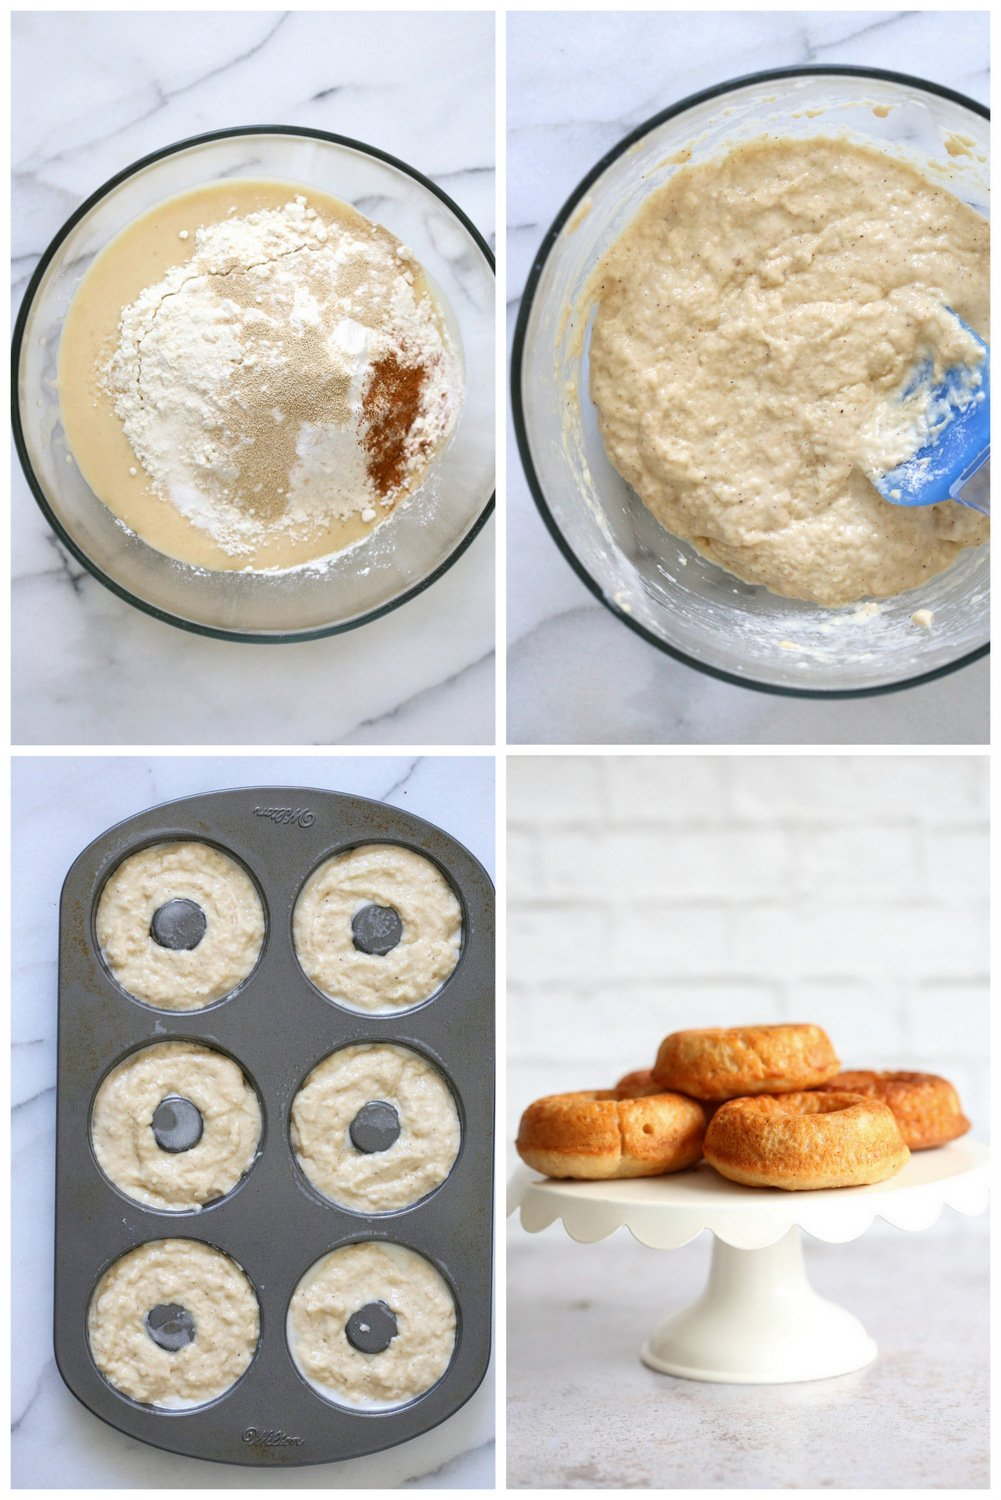 Step pictures for Vegan Banana Donuts. Make the batter, Pour into donut pan and bake